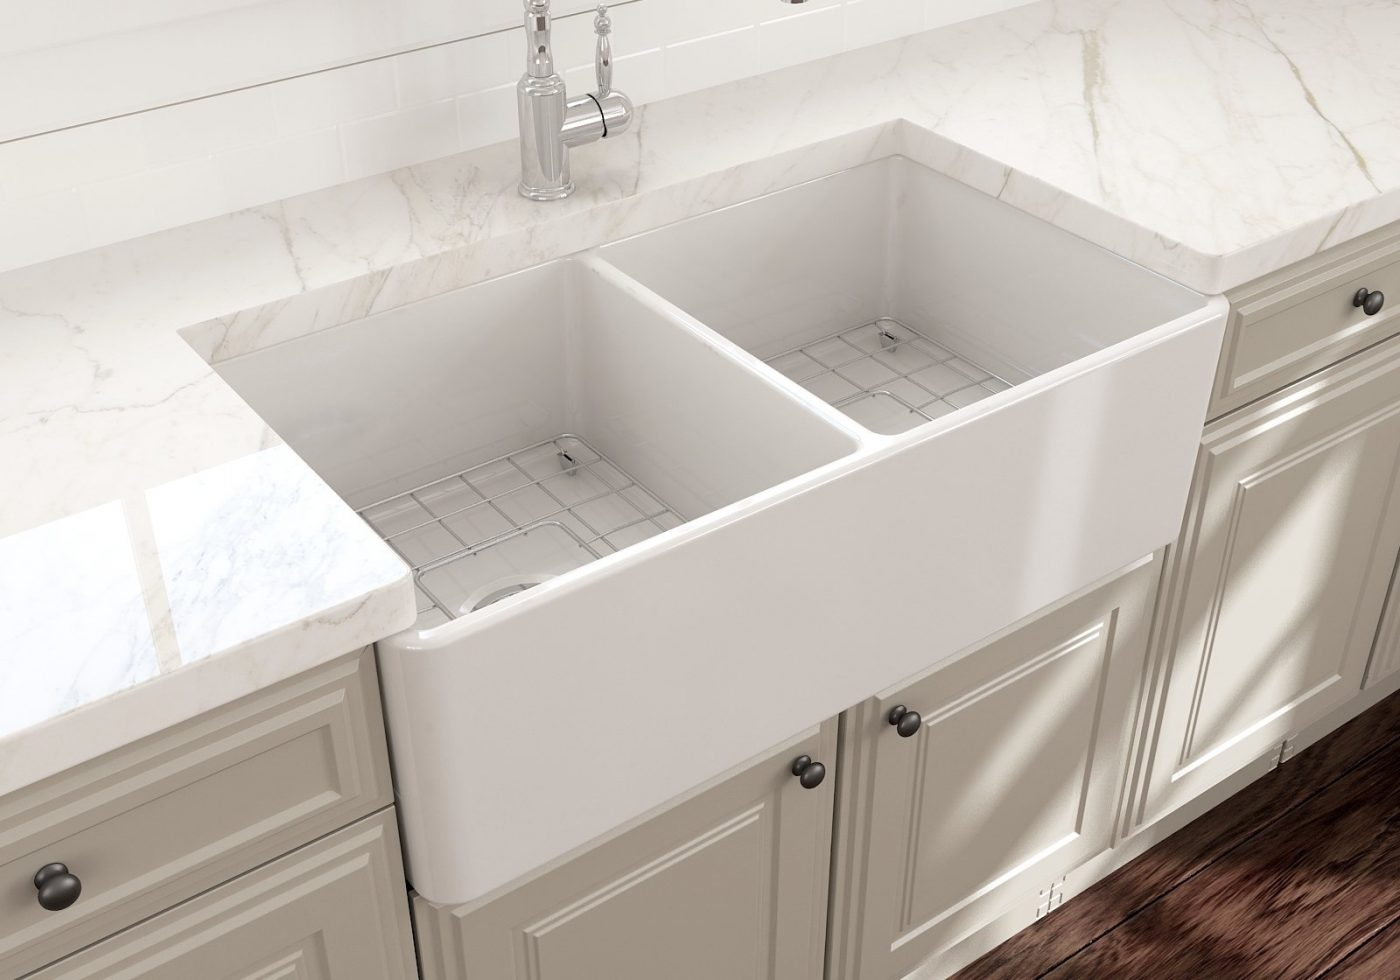 "CLASSICO 33D Farmhouse Apron Front Fireclay 33"" Double Bowl Kitchen Sink"